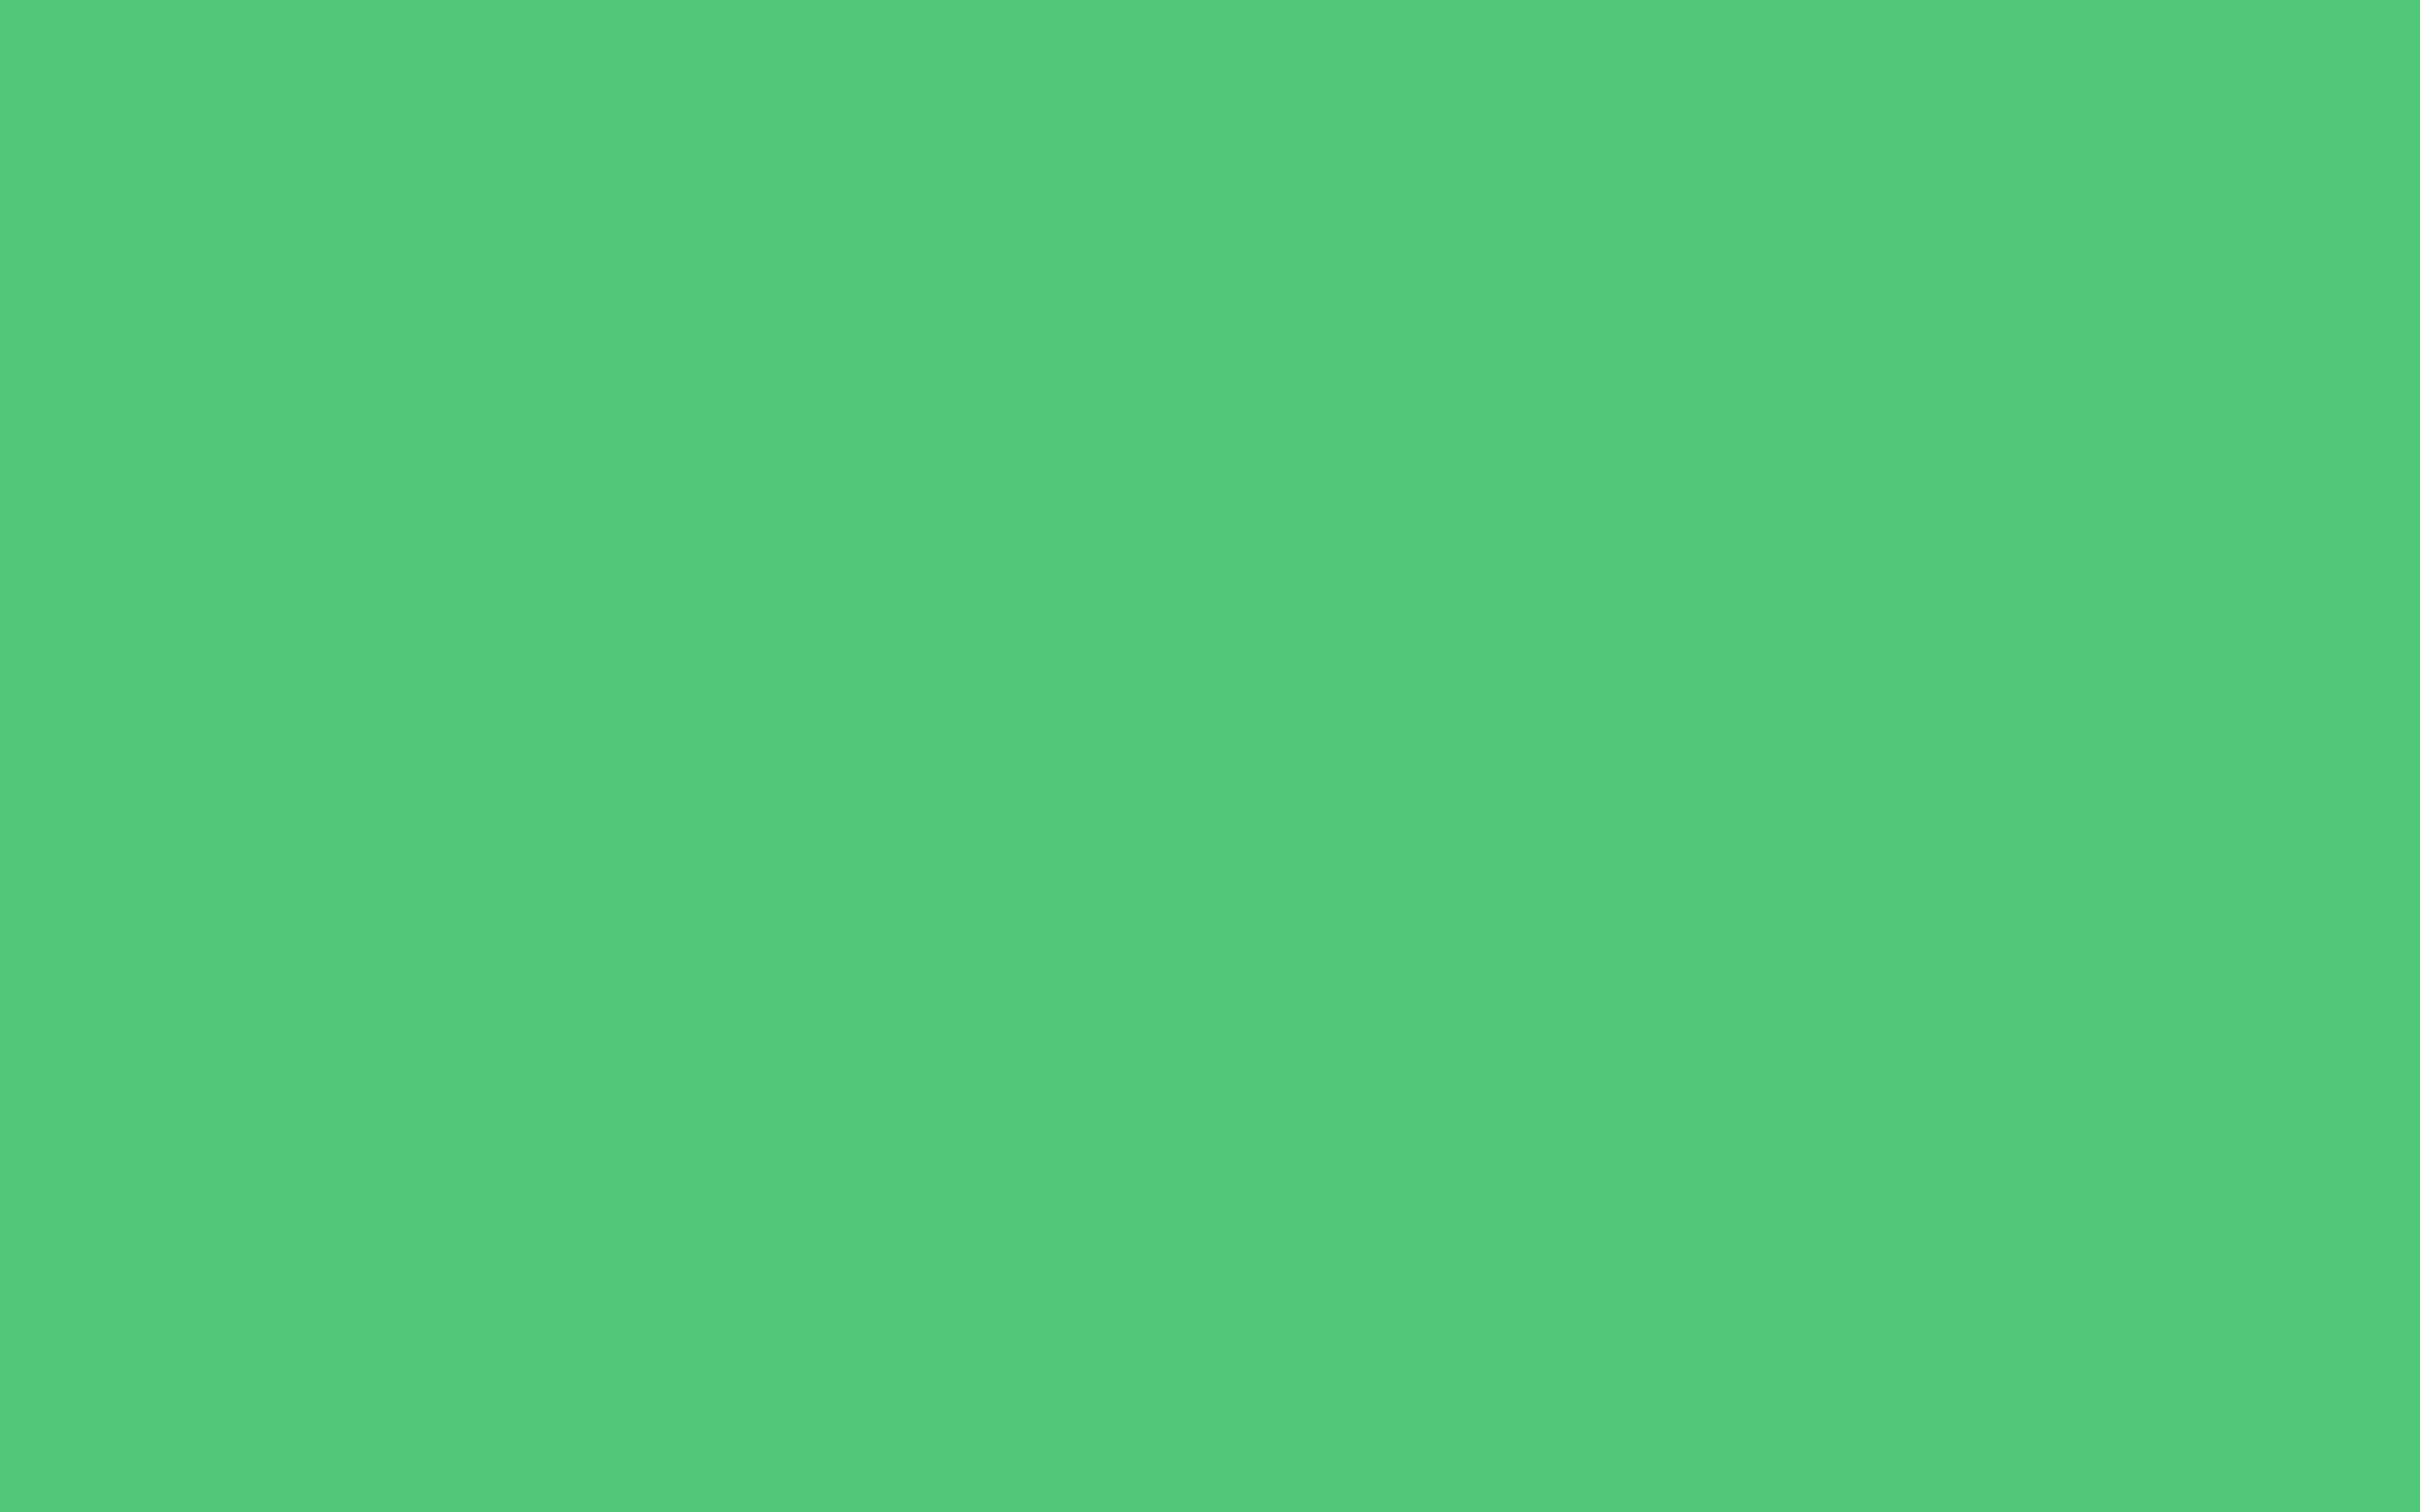 2880x1800 Emerald Solid Color Background 2880x1800